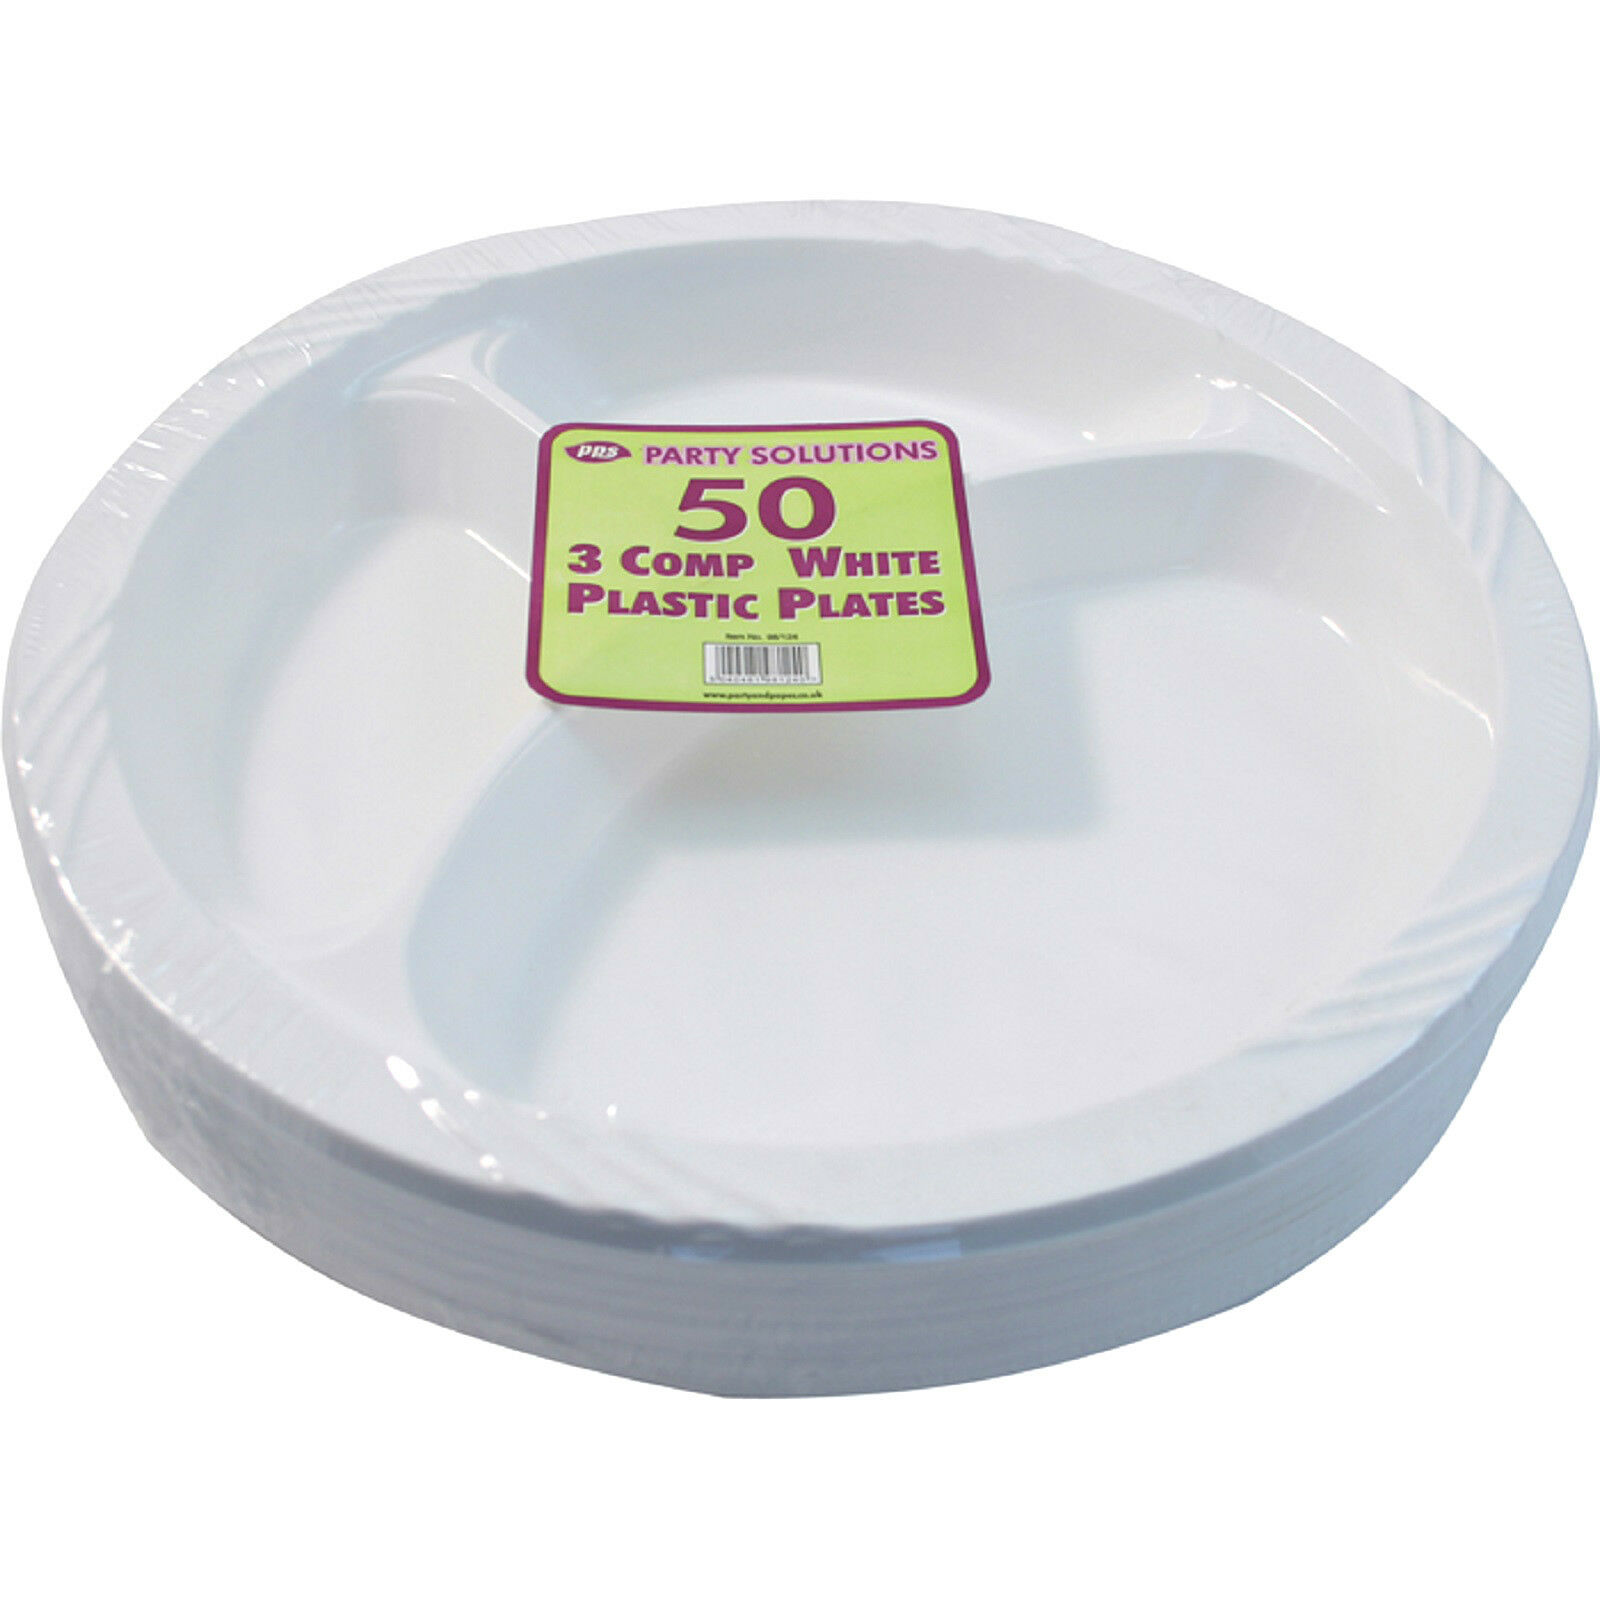 300 x Weiß PLASTIC PLATES 3 COMPARTMENT 10  26cm DISPOSABLE PARTY CATERING HOME